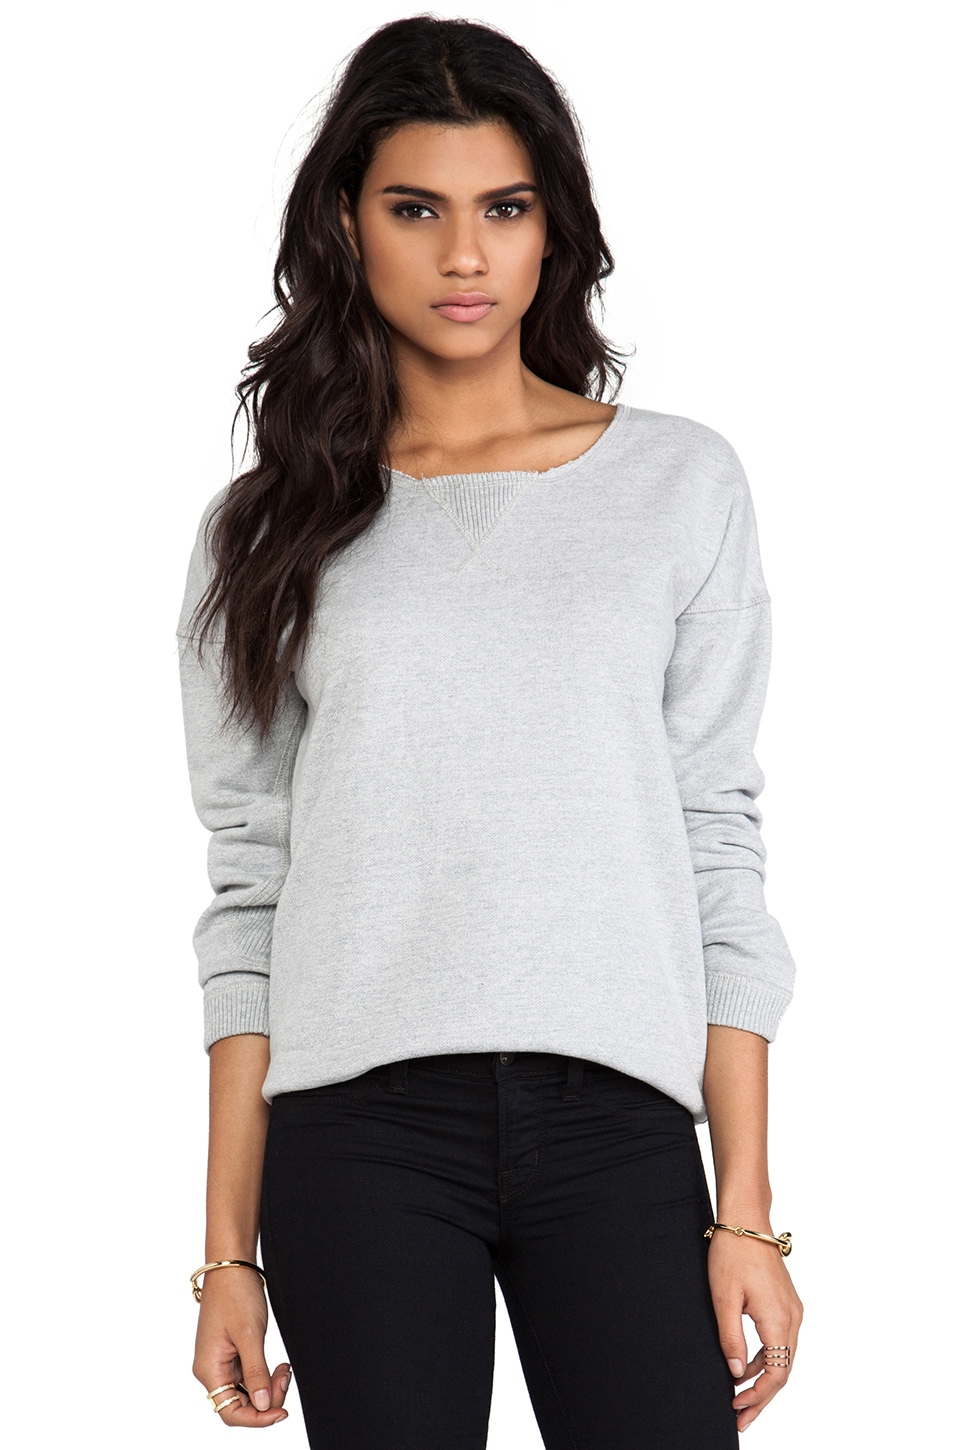 First Base Sloppy Joe Sweatshirt in Light Grey Marle